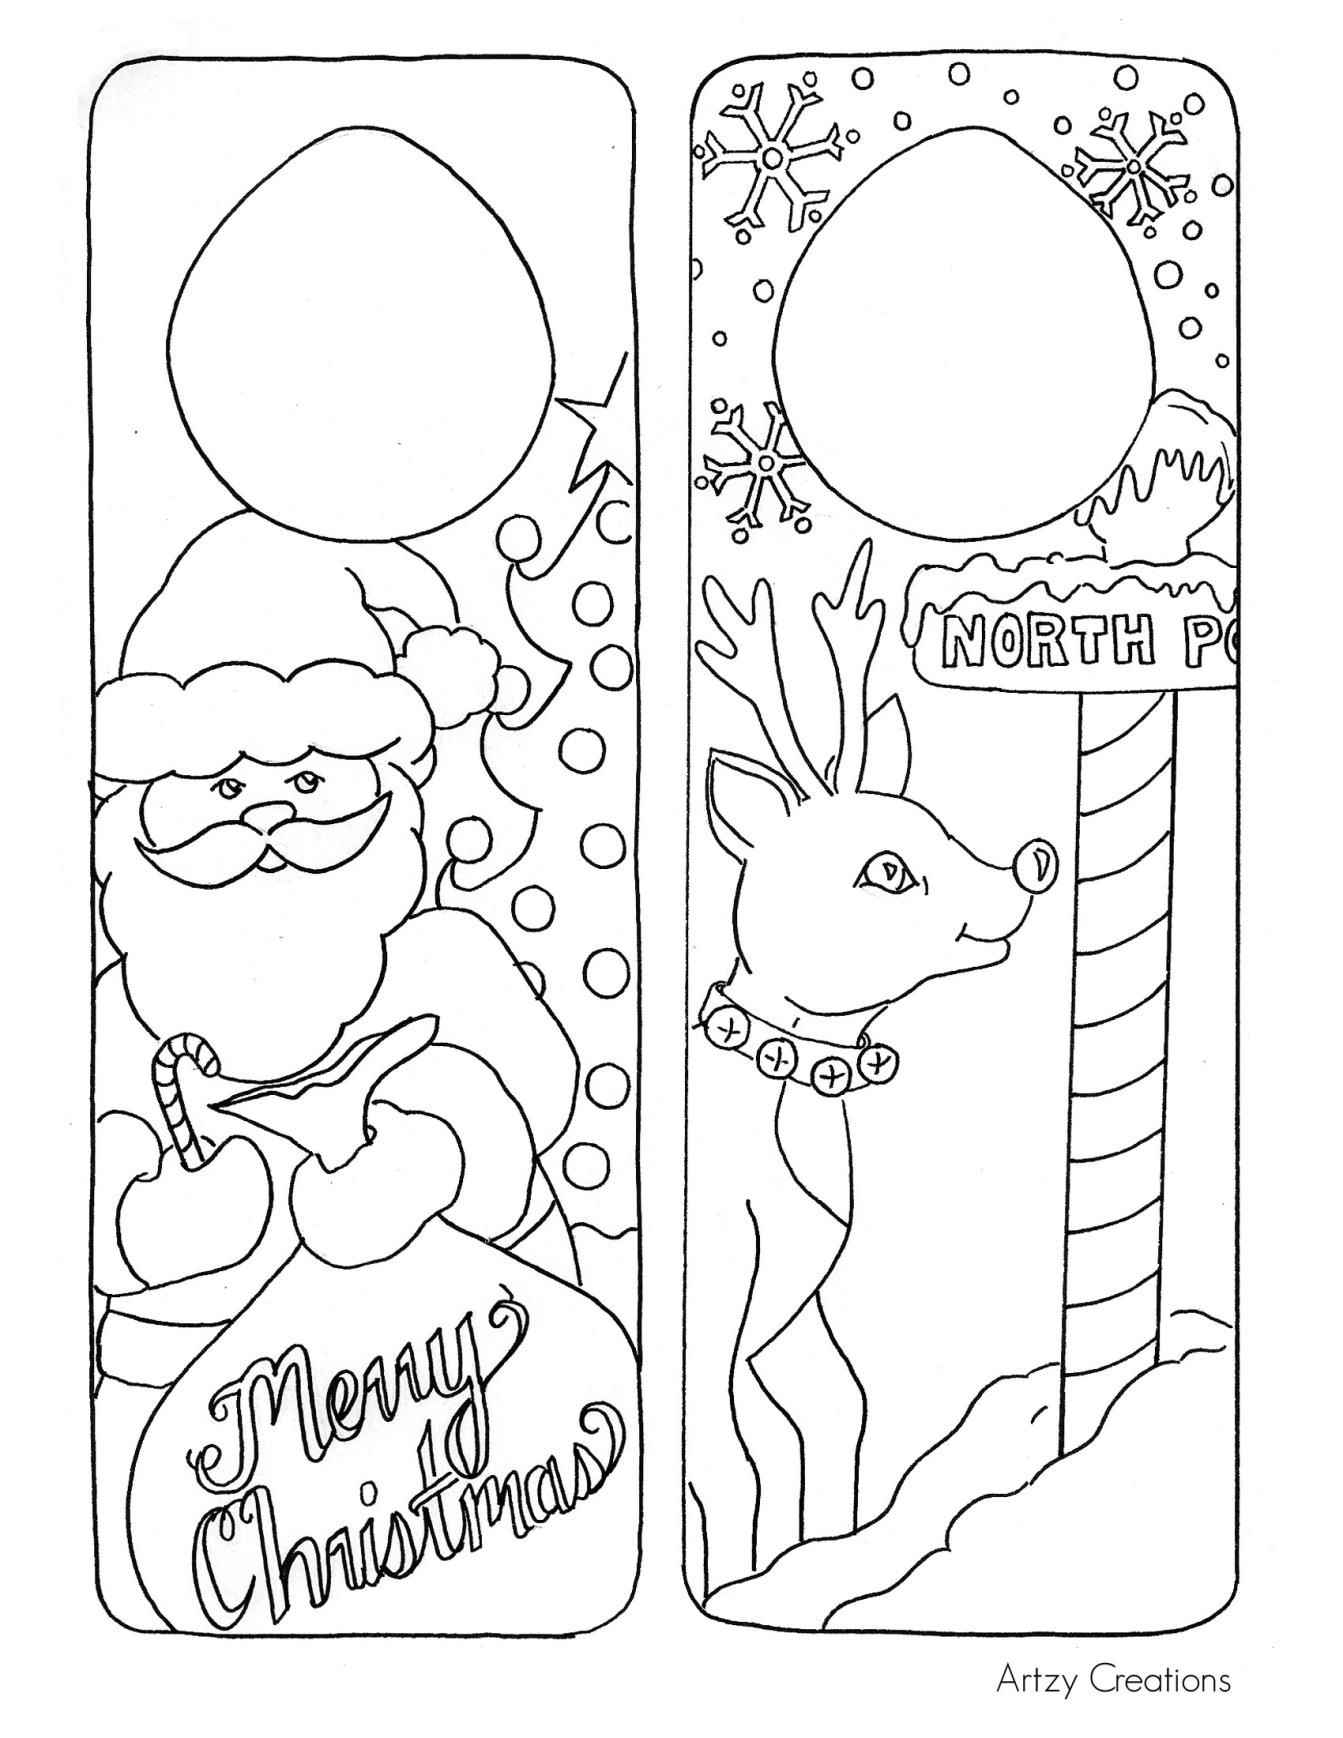 Merry Christmas Cards Coloring Pages With Free Printable